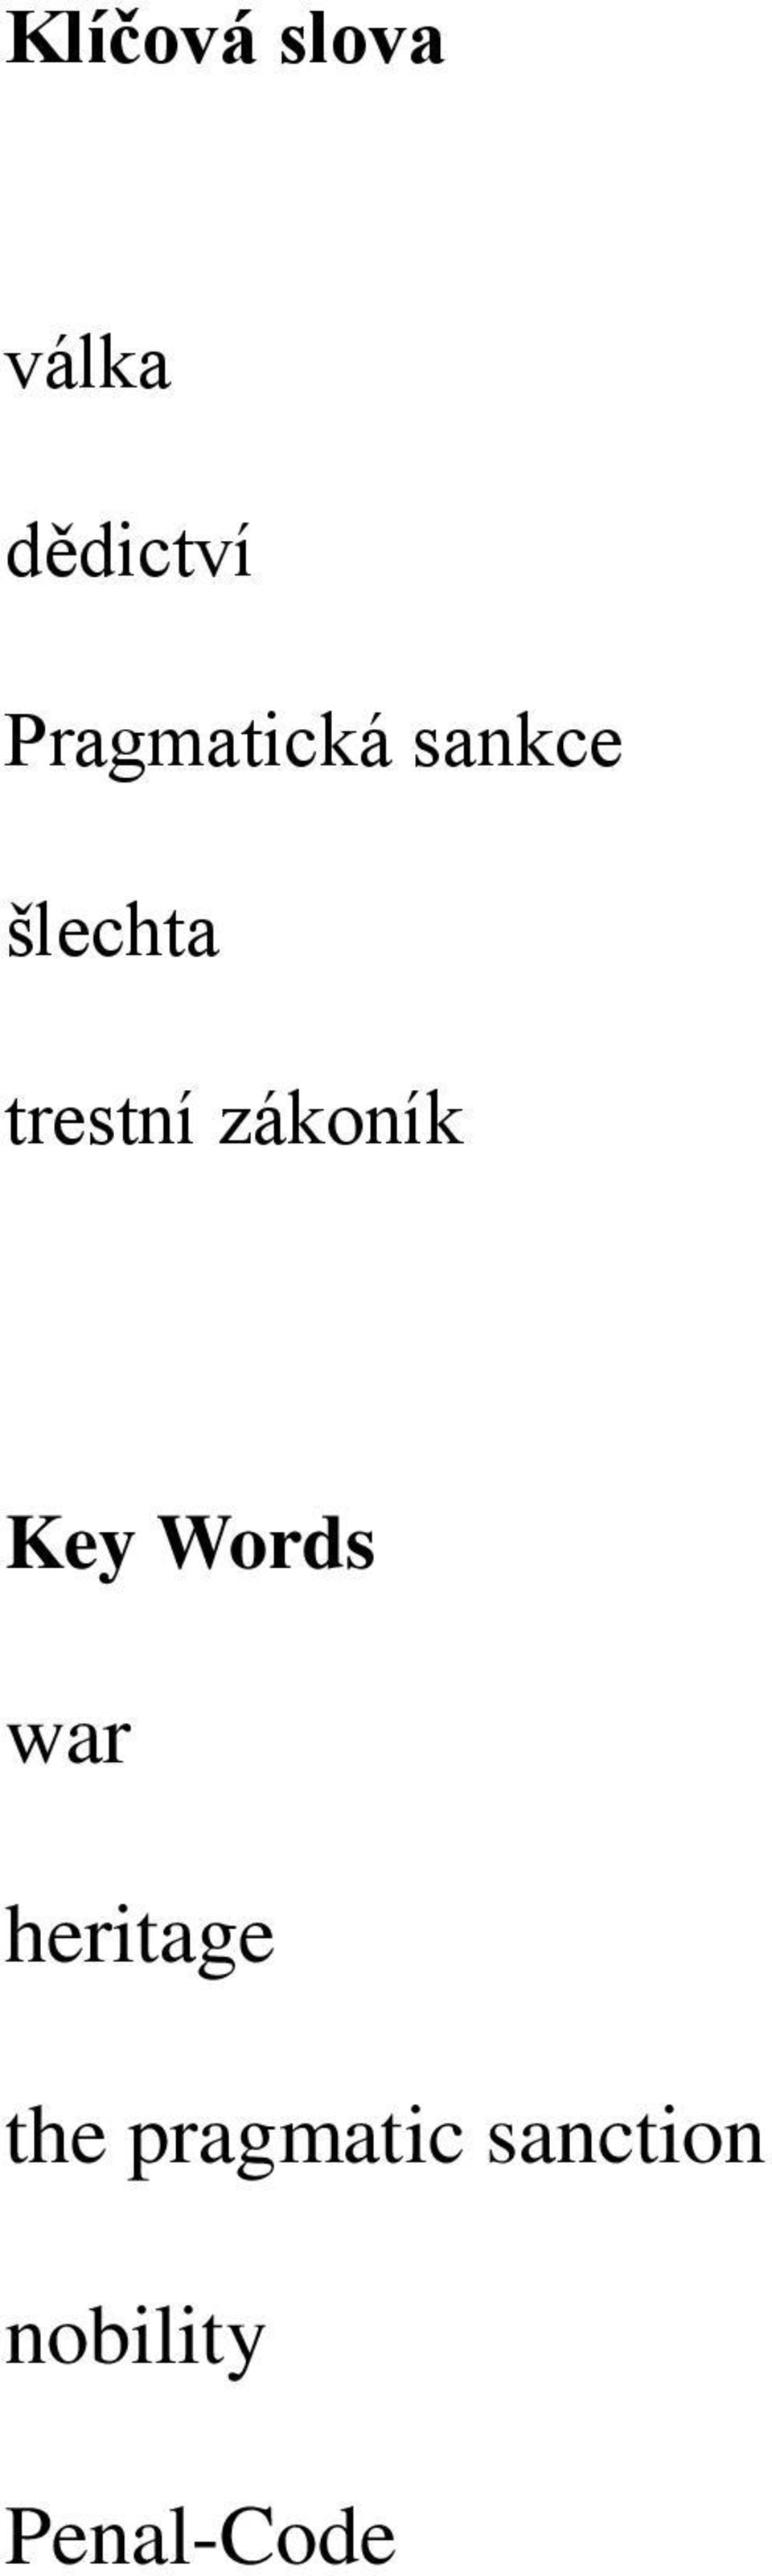 zákoník Key Words war heritage the